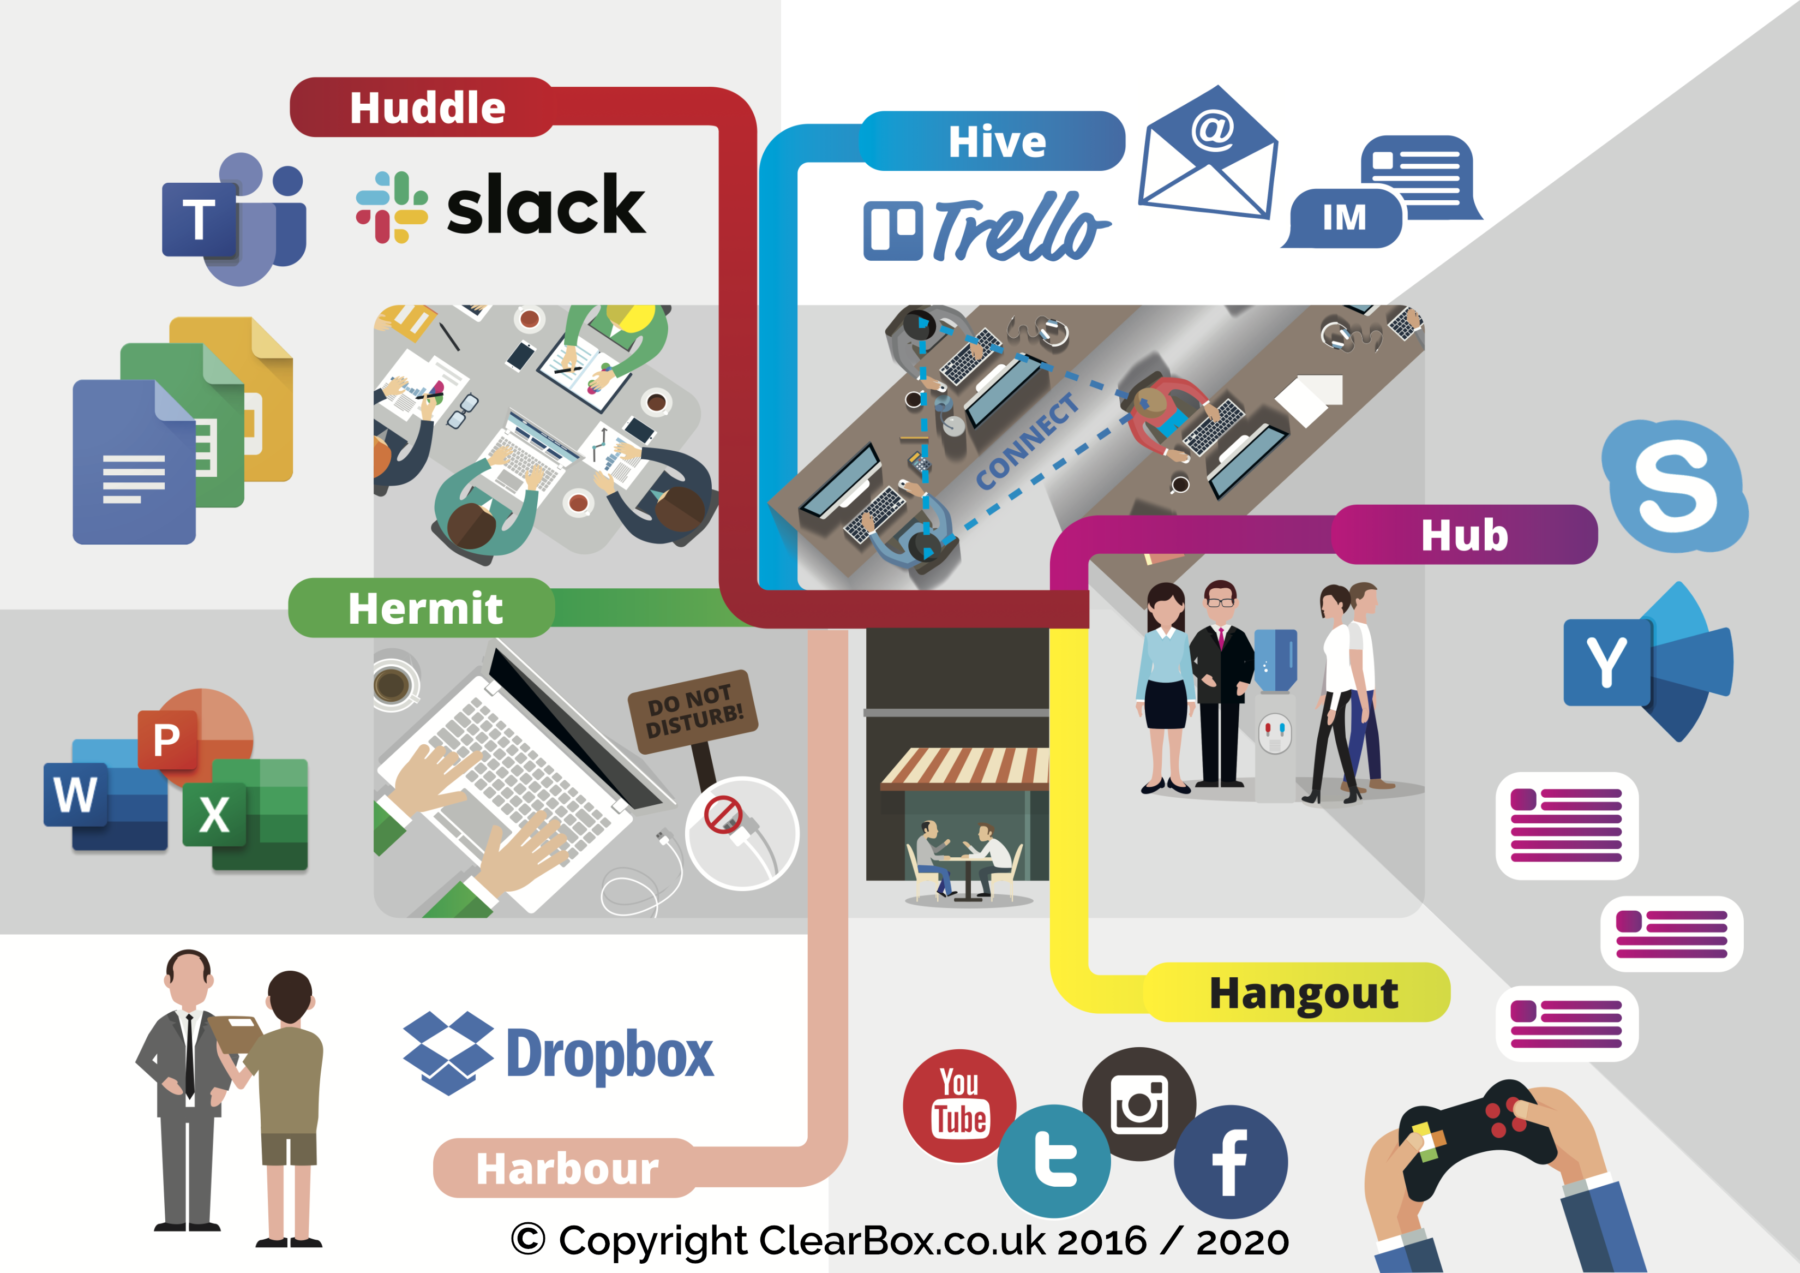 Hub, hive, and hangout graphic visualisation.